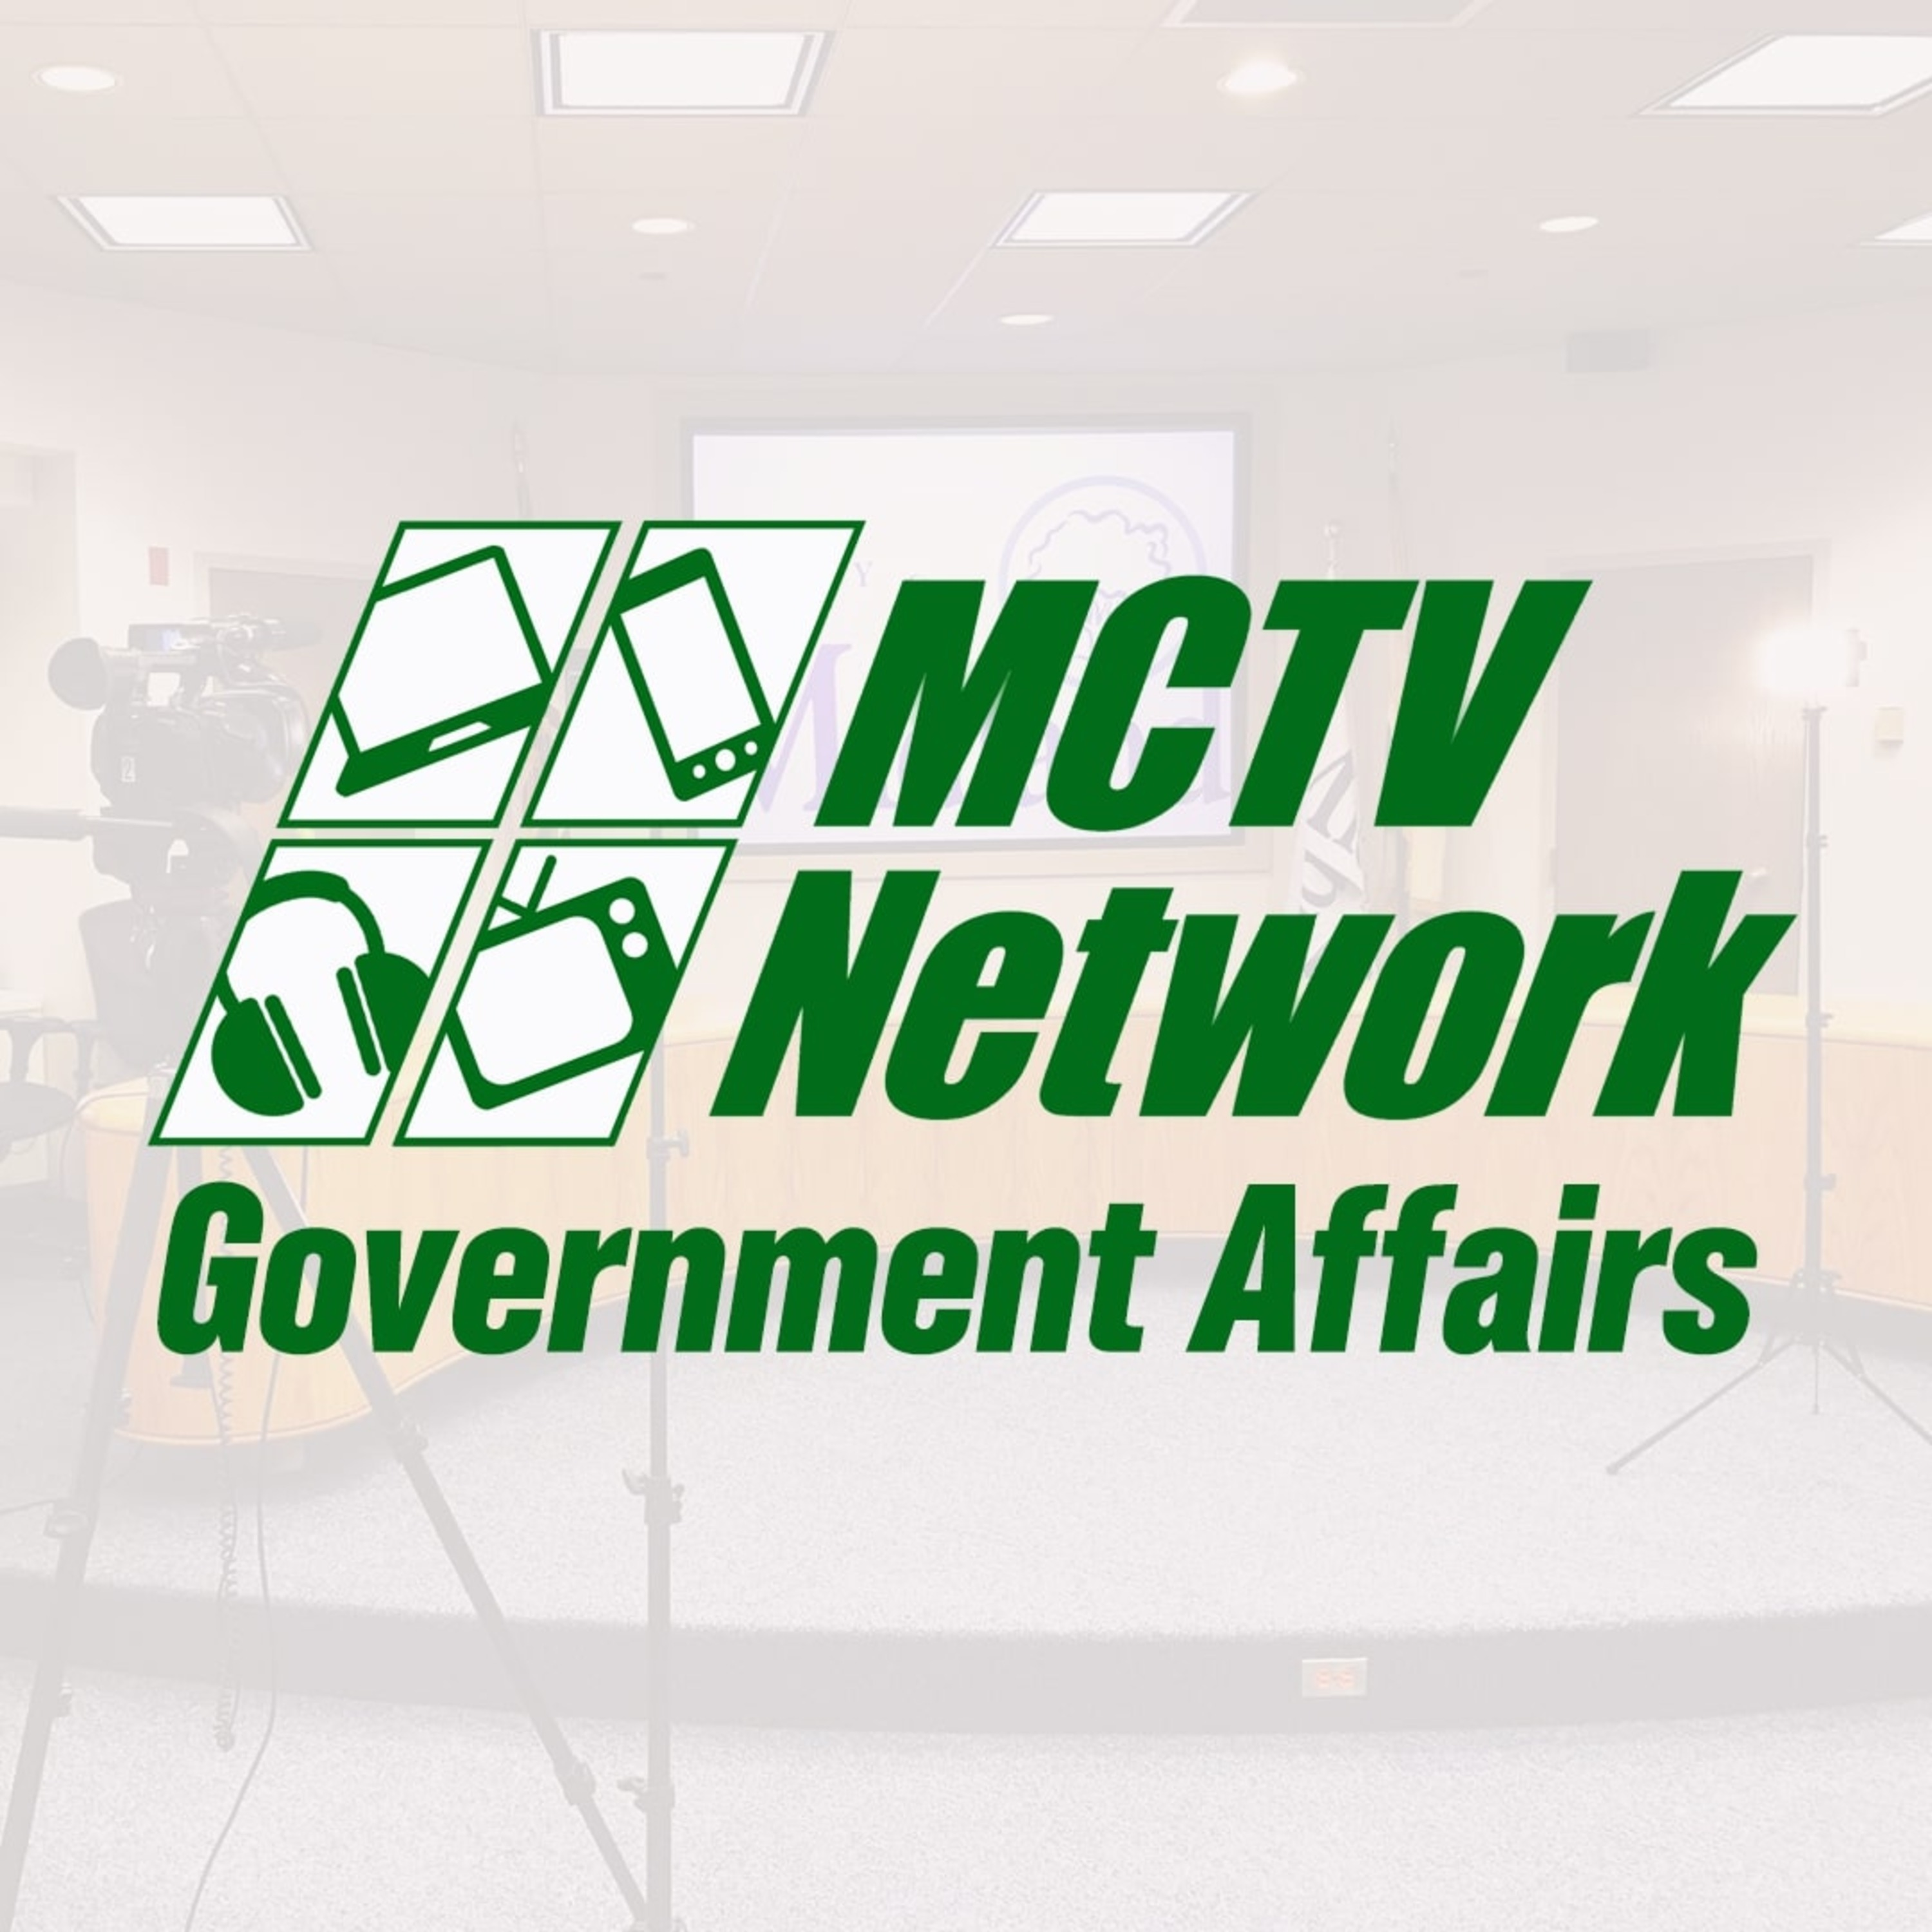 MCTV Network's Government Affairs